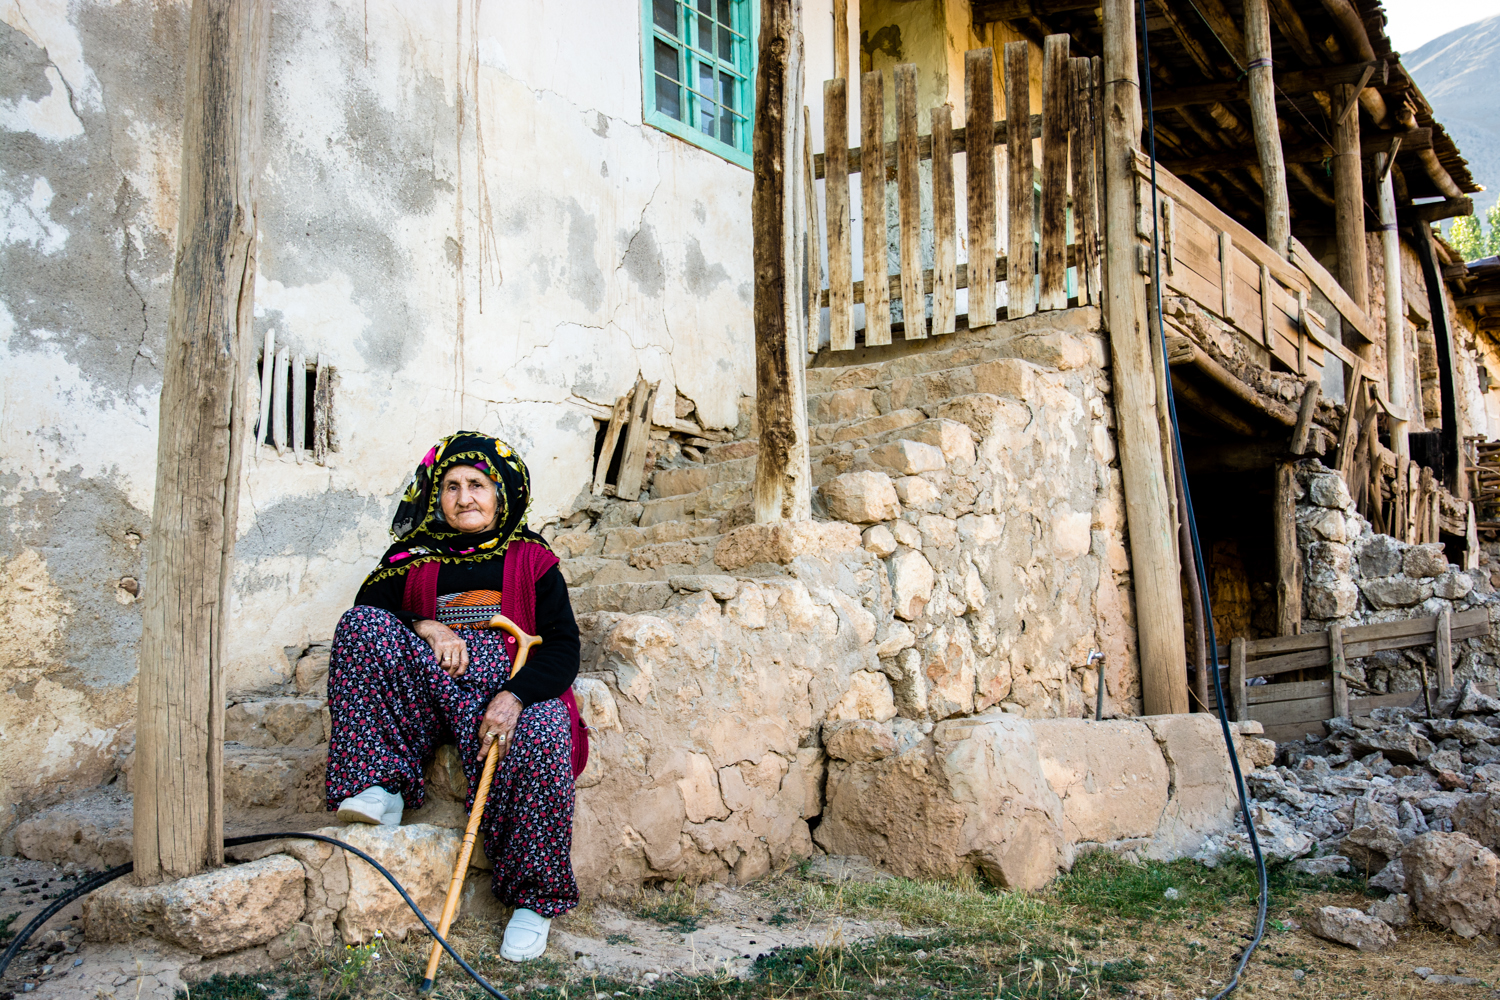 The Alevis of Munzur are ethnic Kurds, making them a minority within a minority in Turkey, since most Kurds, like most Turks, are Sunni Muslim. Religiously, the Alevis have many similarities to the Yazidi people of Iraq.